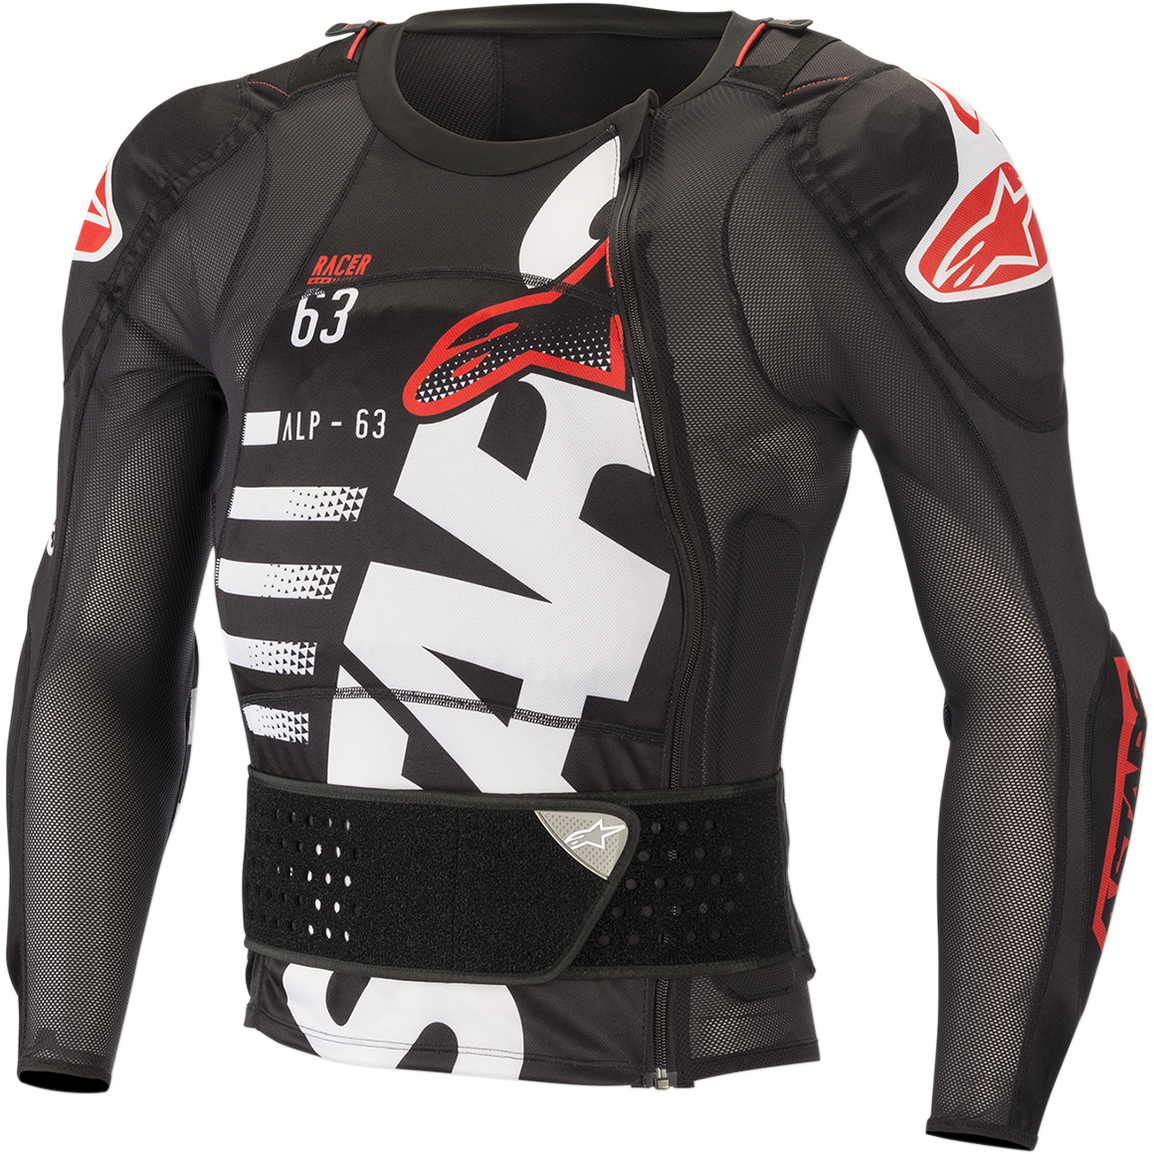 Sequence Protection Jacket — Long-Sleeve